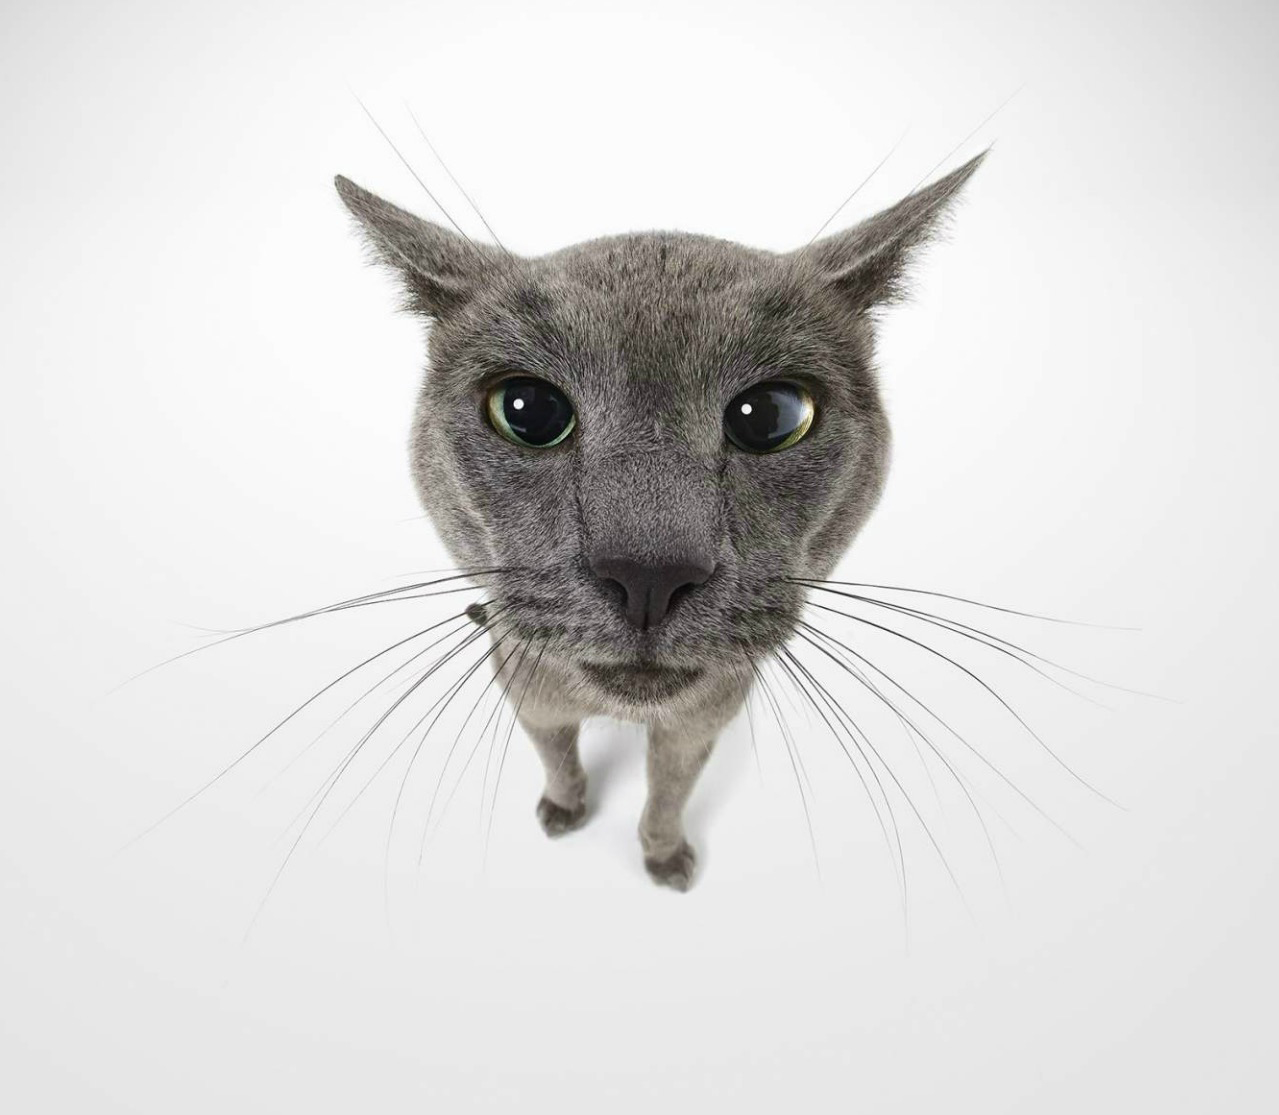 Wide angle shot of Russian Blue cat staring at camera Copyright Gandee Vasan